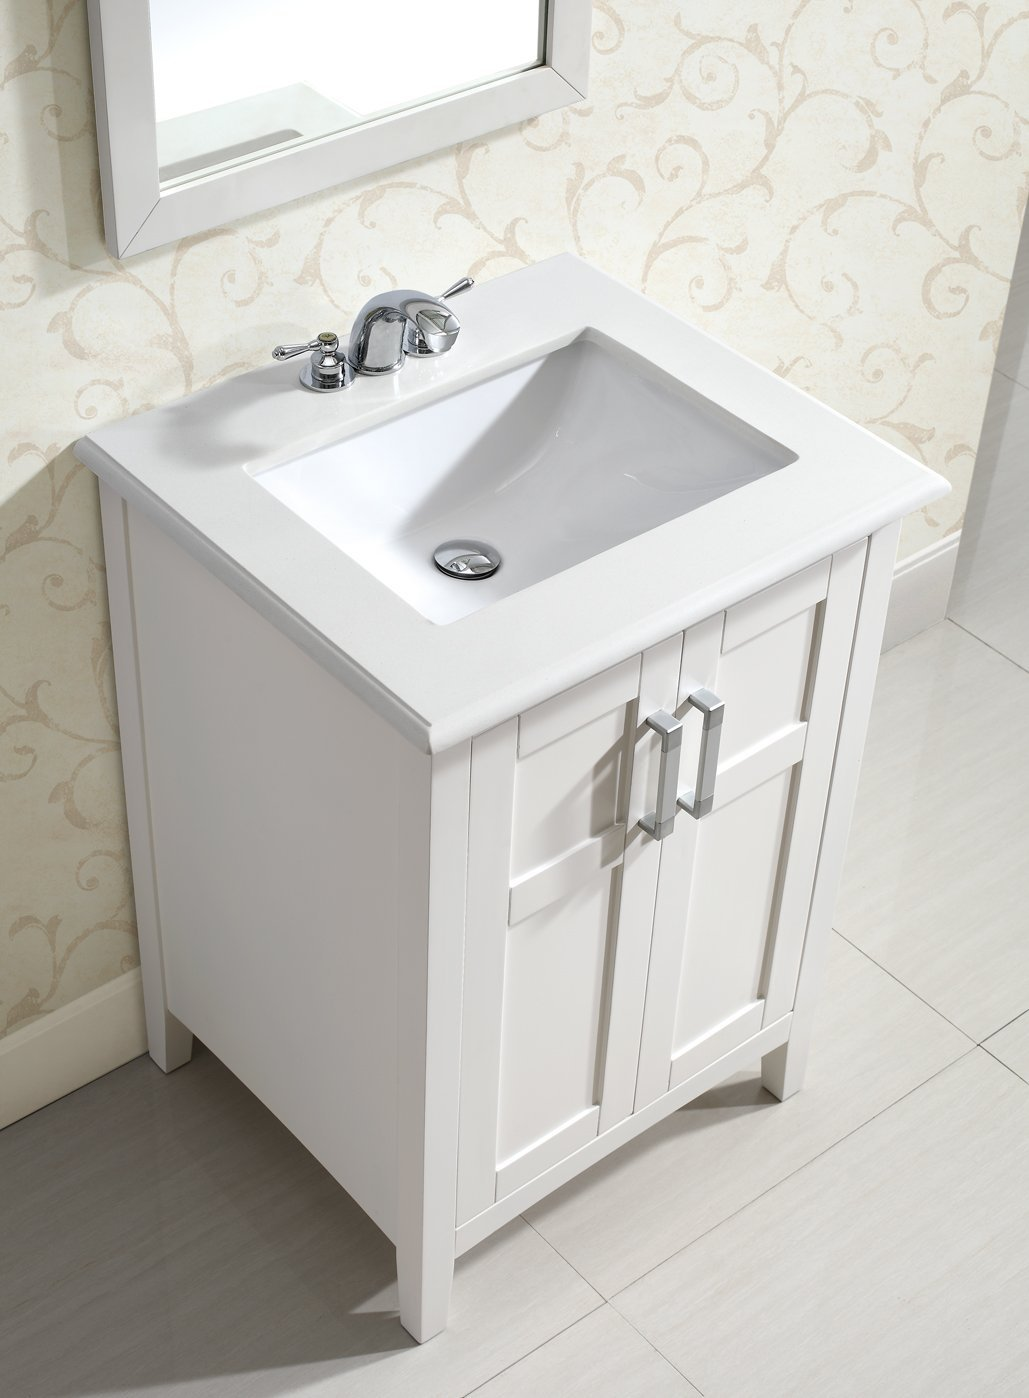 Bathroom Vanity Manufacturers Bathroom Vanity Manufacturers Intriguing Imagery As